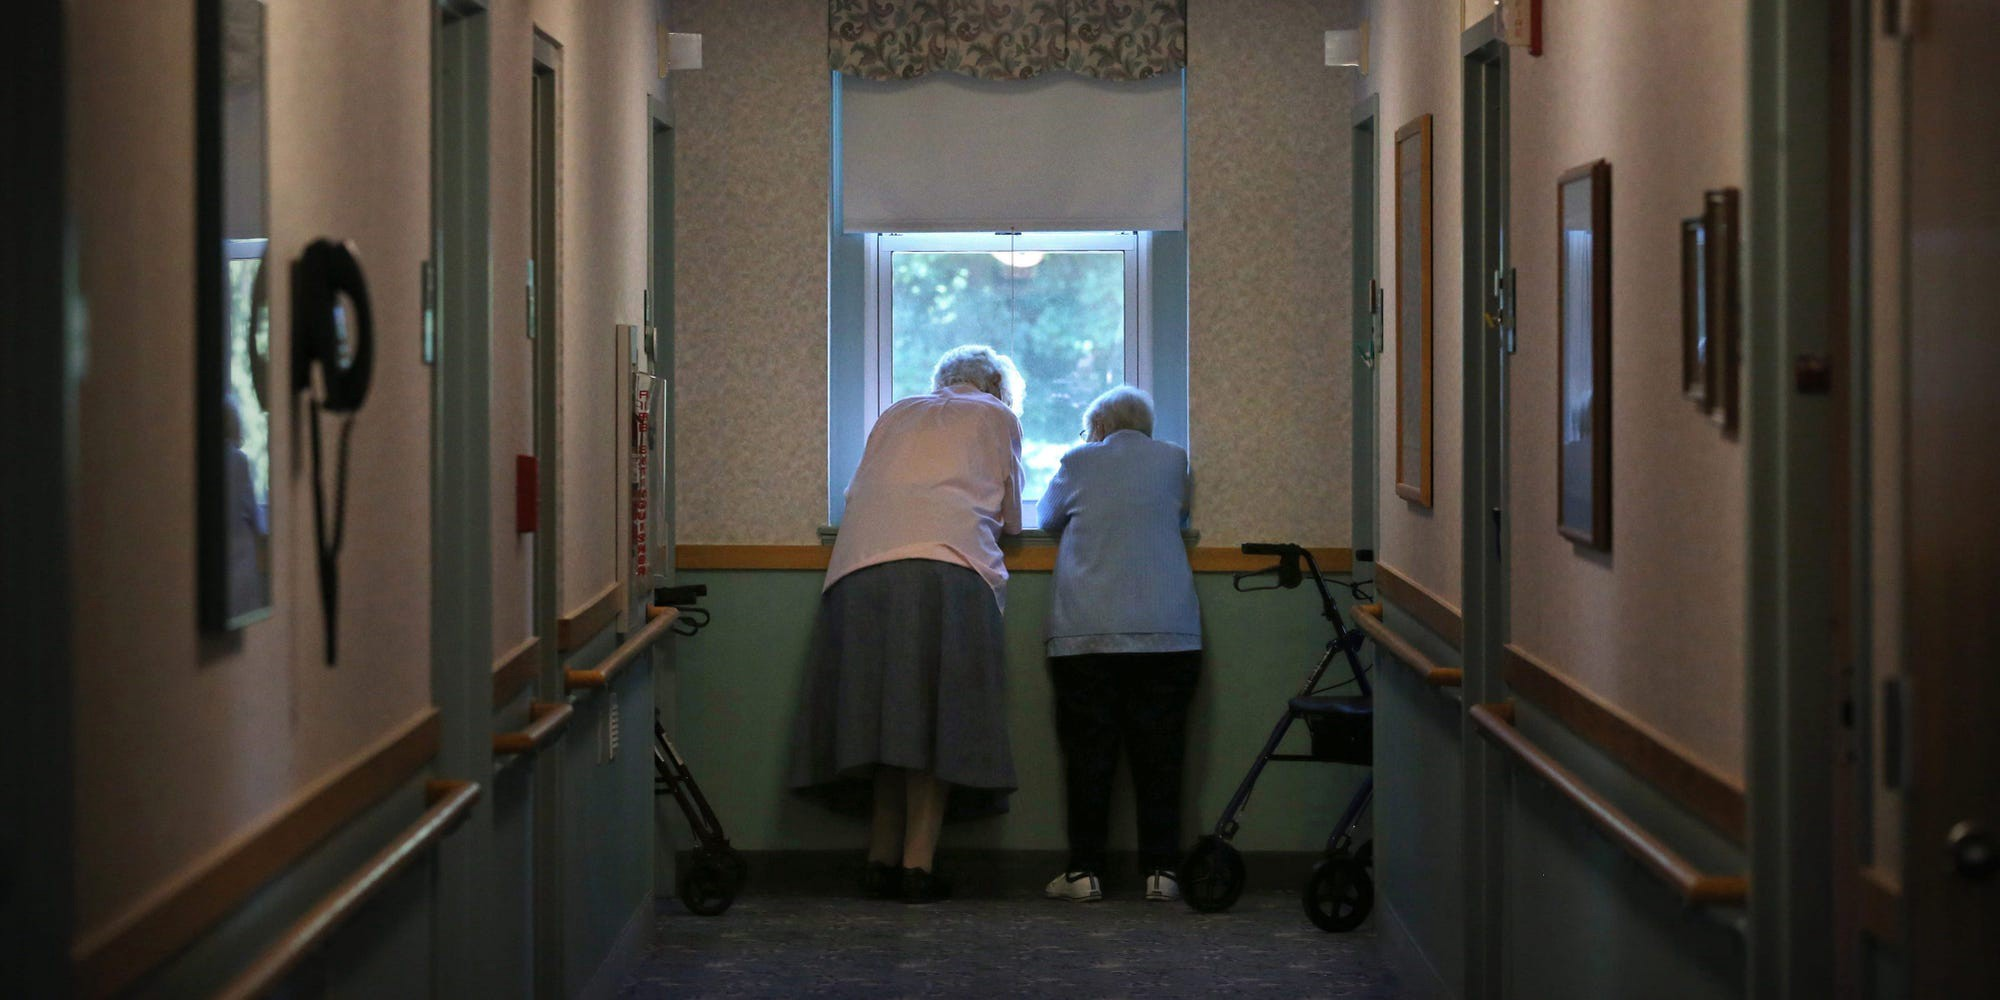 Women above the age of 60 have the lowest reported cases of sexual abuse.